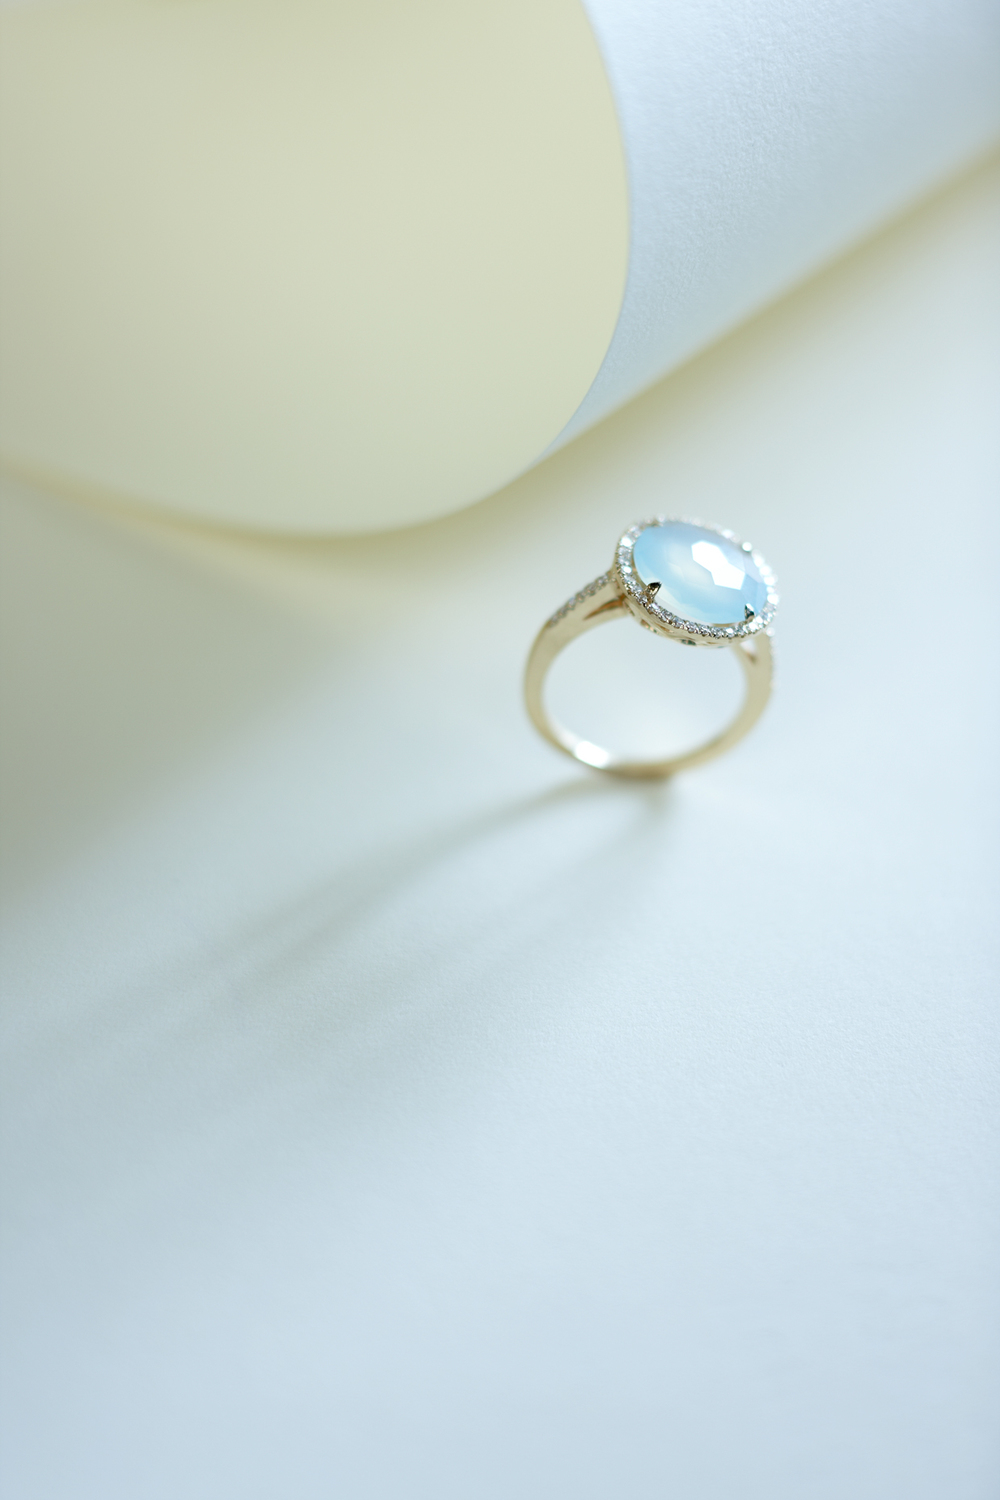 Product photography Jewelry Derek Israelsen Aquamarine Ring